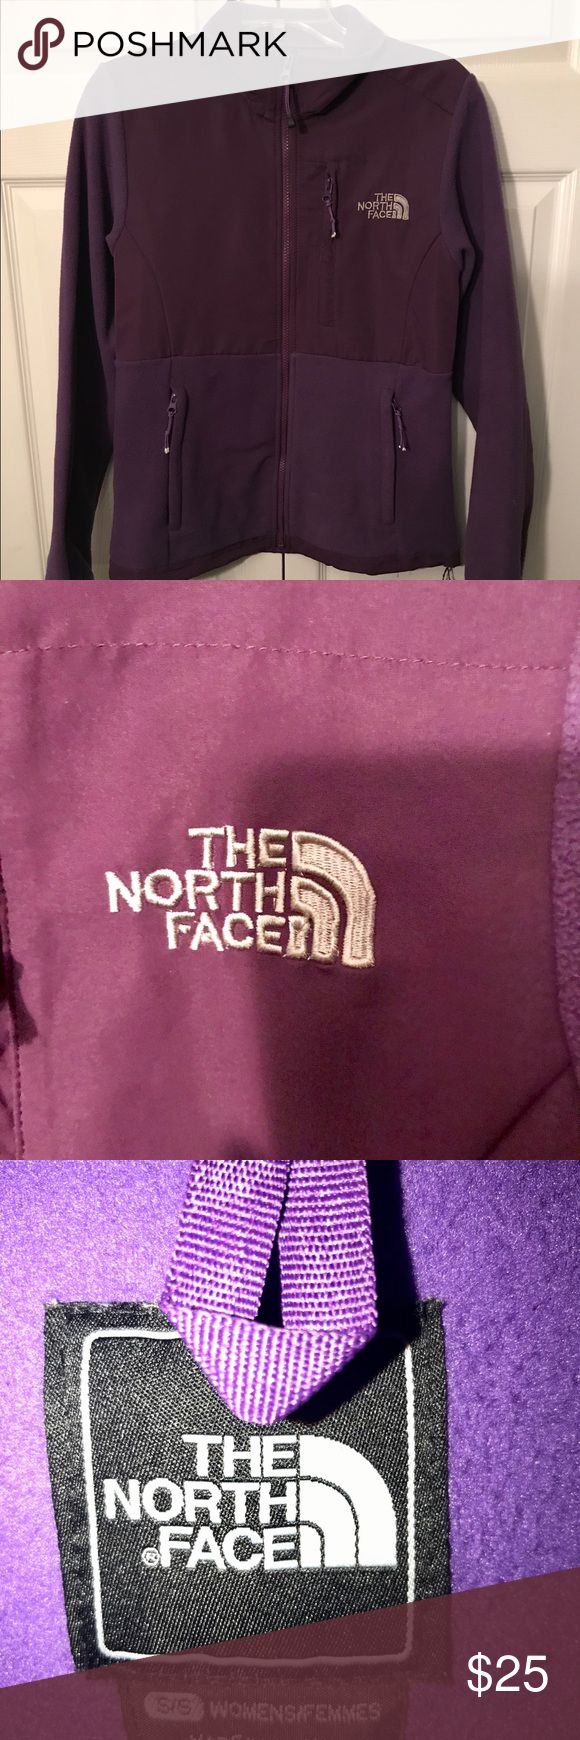 💜Women's size small The North Face jacket💜 Women's size small purple The North Face zip up fleece jacket. In excellent, like new condition and super warm for the cold weather! The North Face Tops Sweatshirts & Hoodies